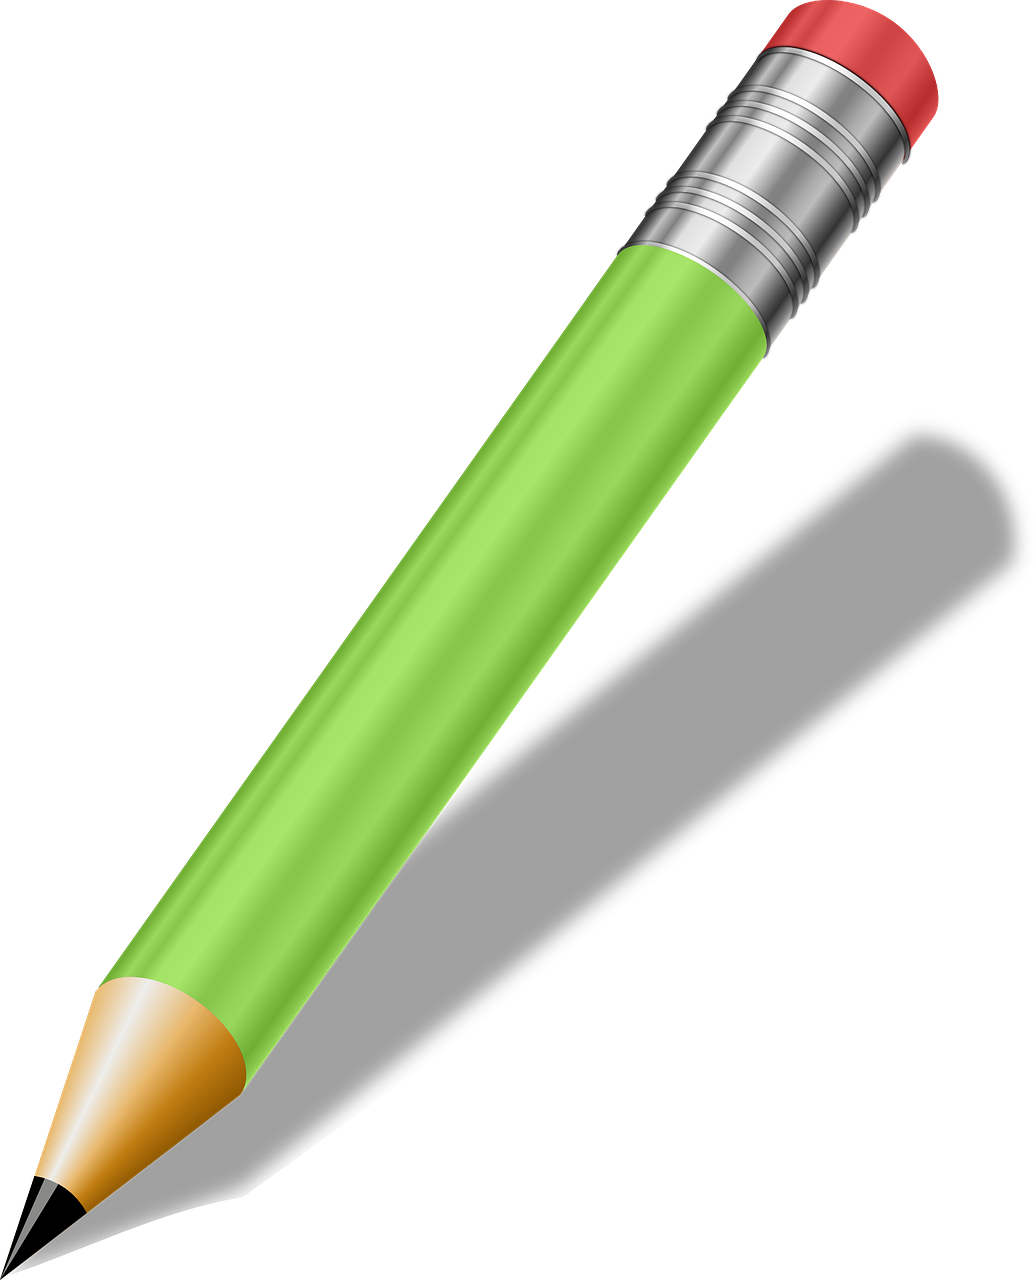 pencil, green, writing tools